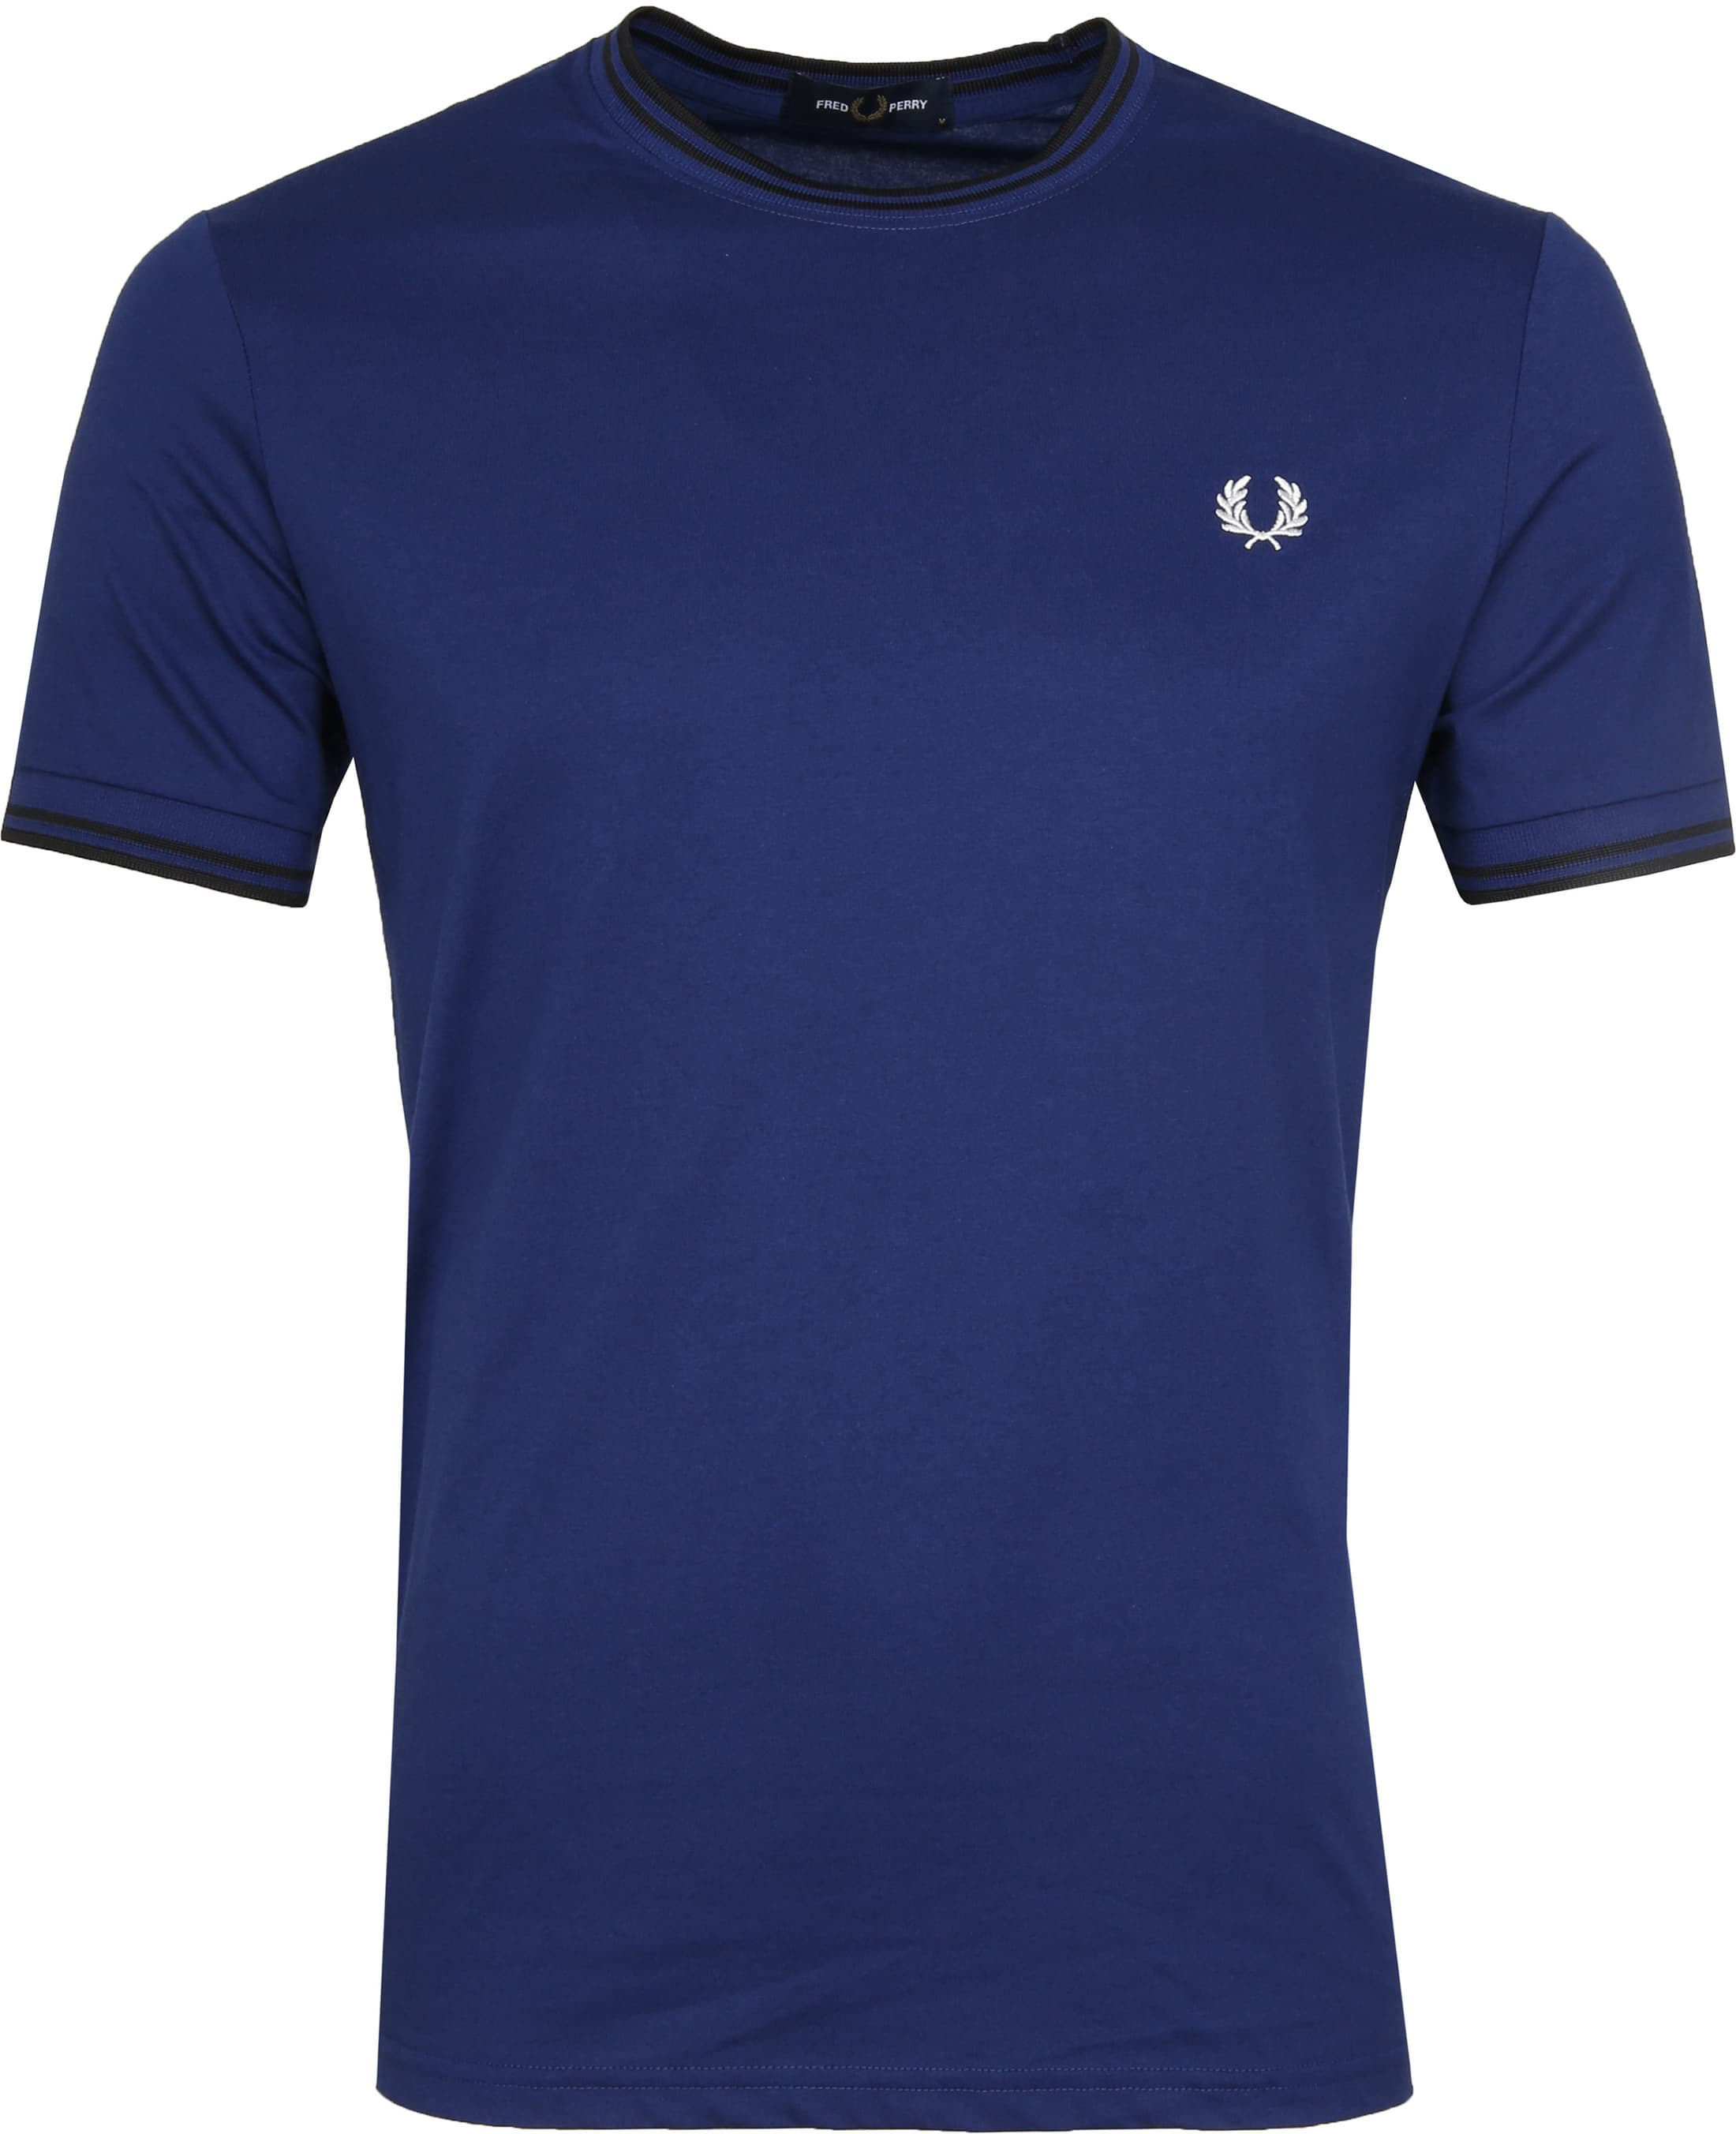 Fred Perry Twin Tipped T-shirt Blau foto 0